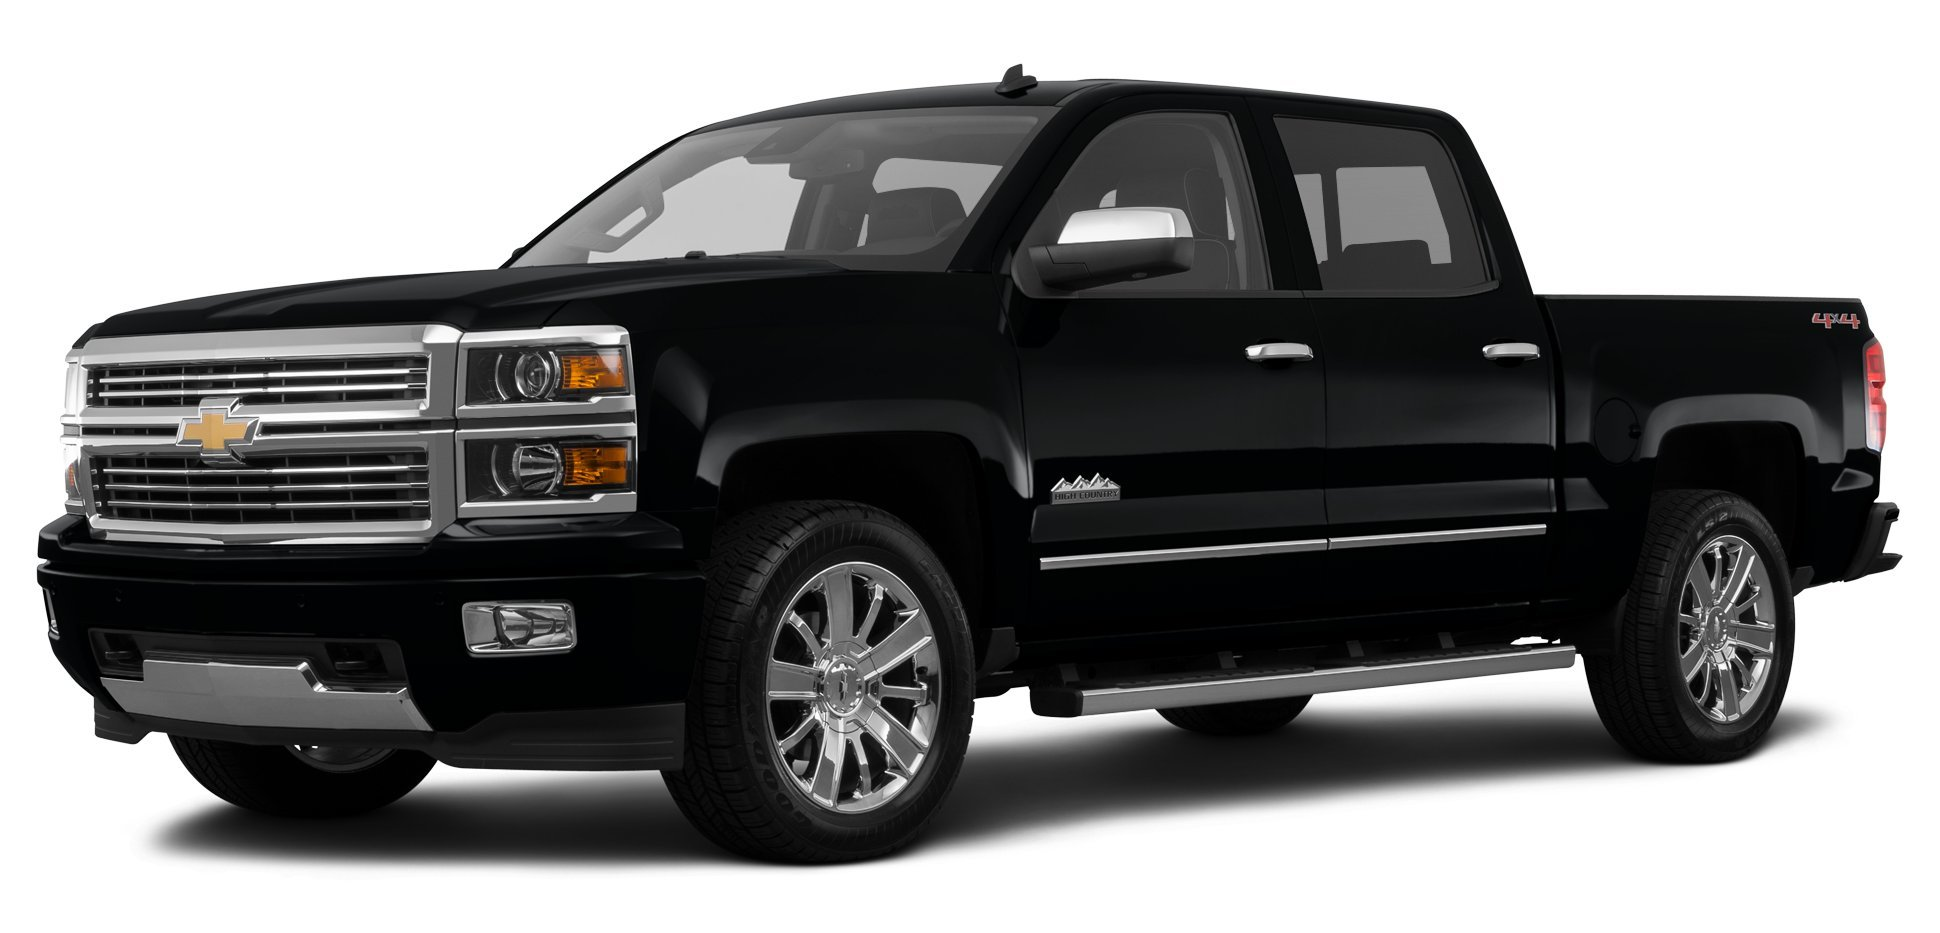 2014 chevrolet silverado 1500 reviews images and specs vehicles. Black Bedroom Furniture Sets. Home Design Ideas